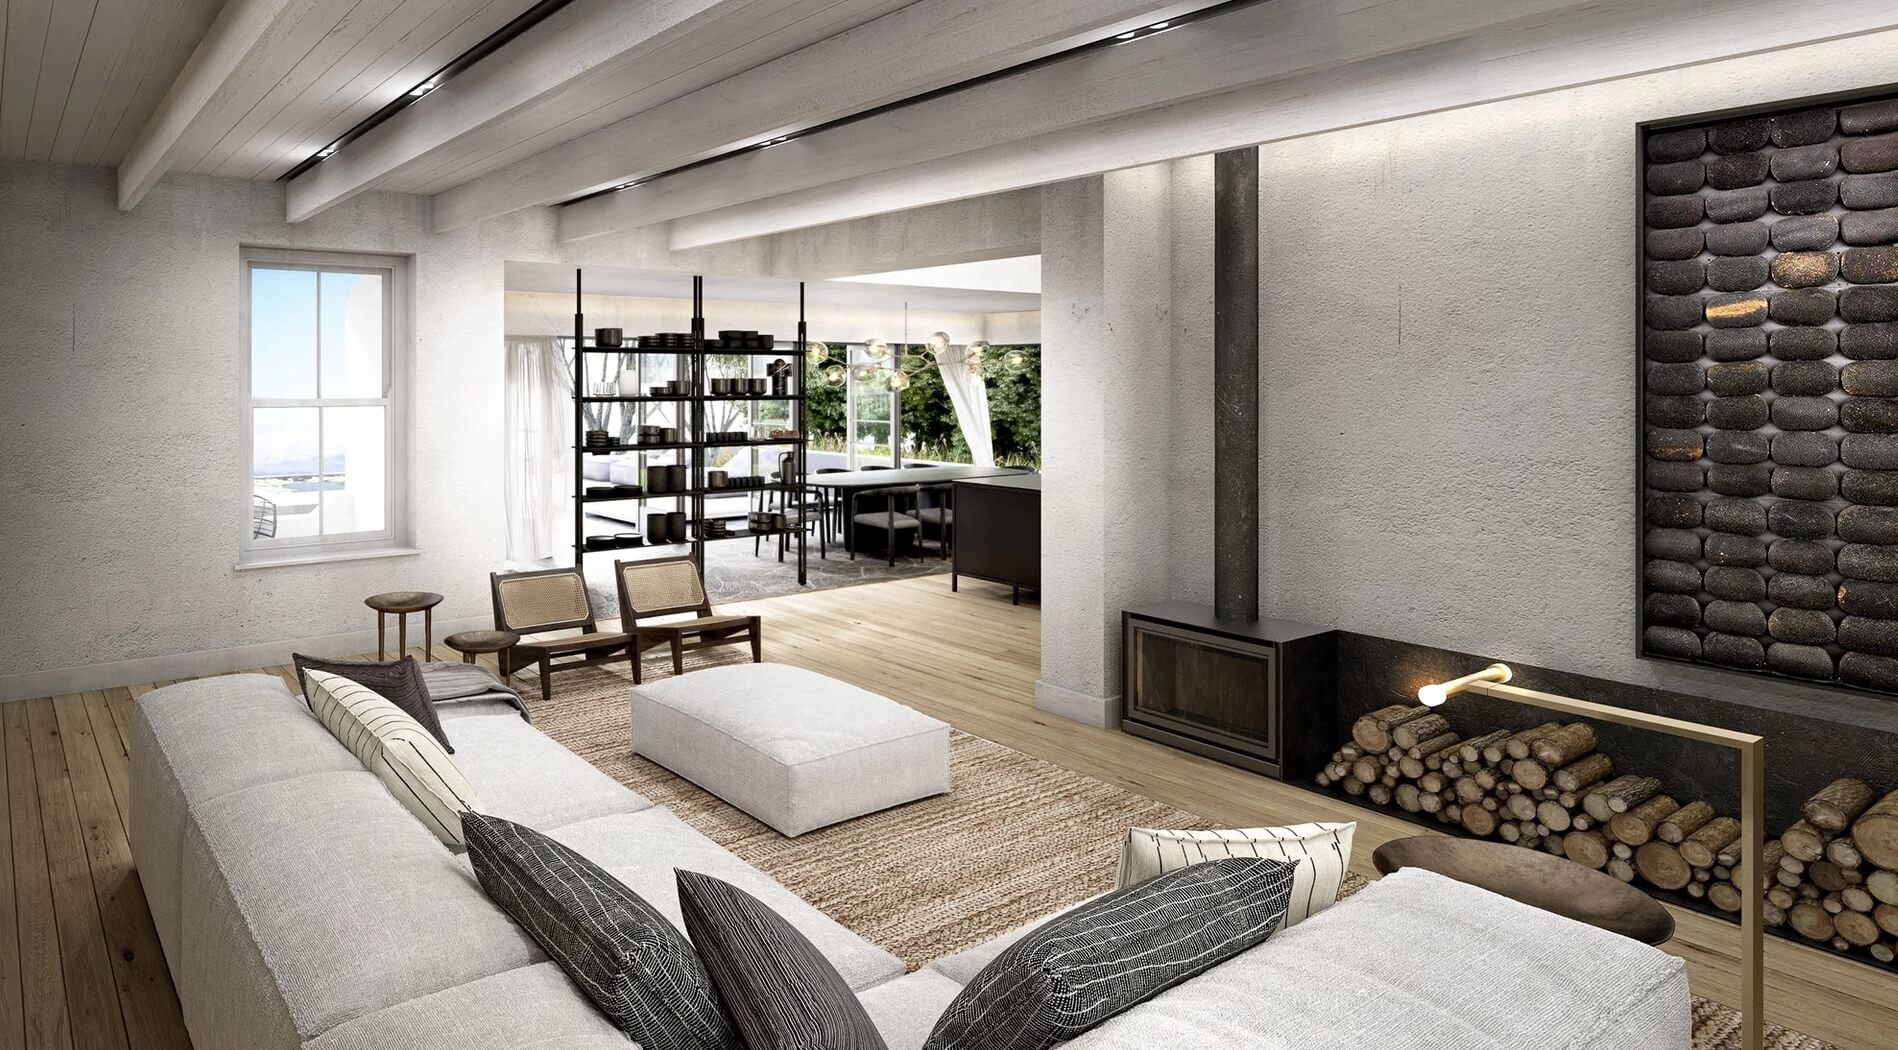 Langfontein Living Room // Western Cape, South Africa